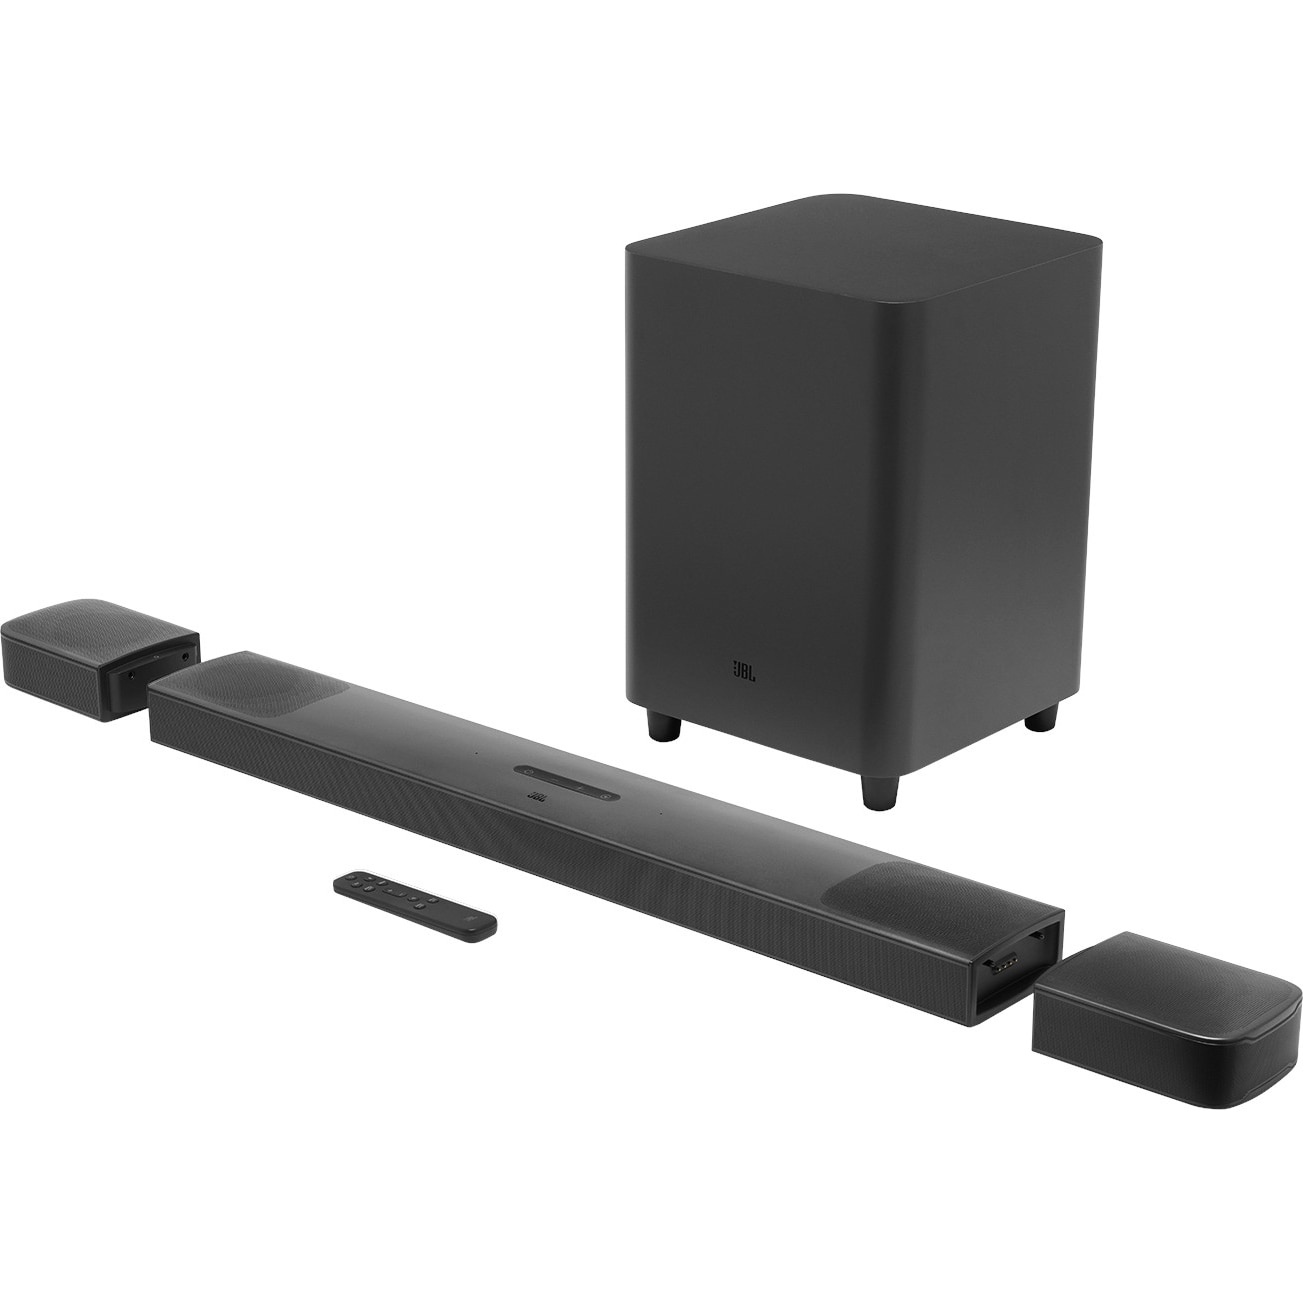 Fotografie Soundbar JBL Bar 9.1 True Wireless Surround, 5.1.4, 820W, 4K, Dolby Atmos, HDMI, Bluetooth, Wi-Fi, Chromecast, Airplay 2, Negru